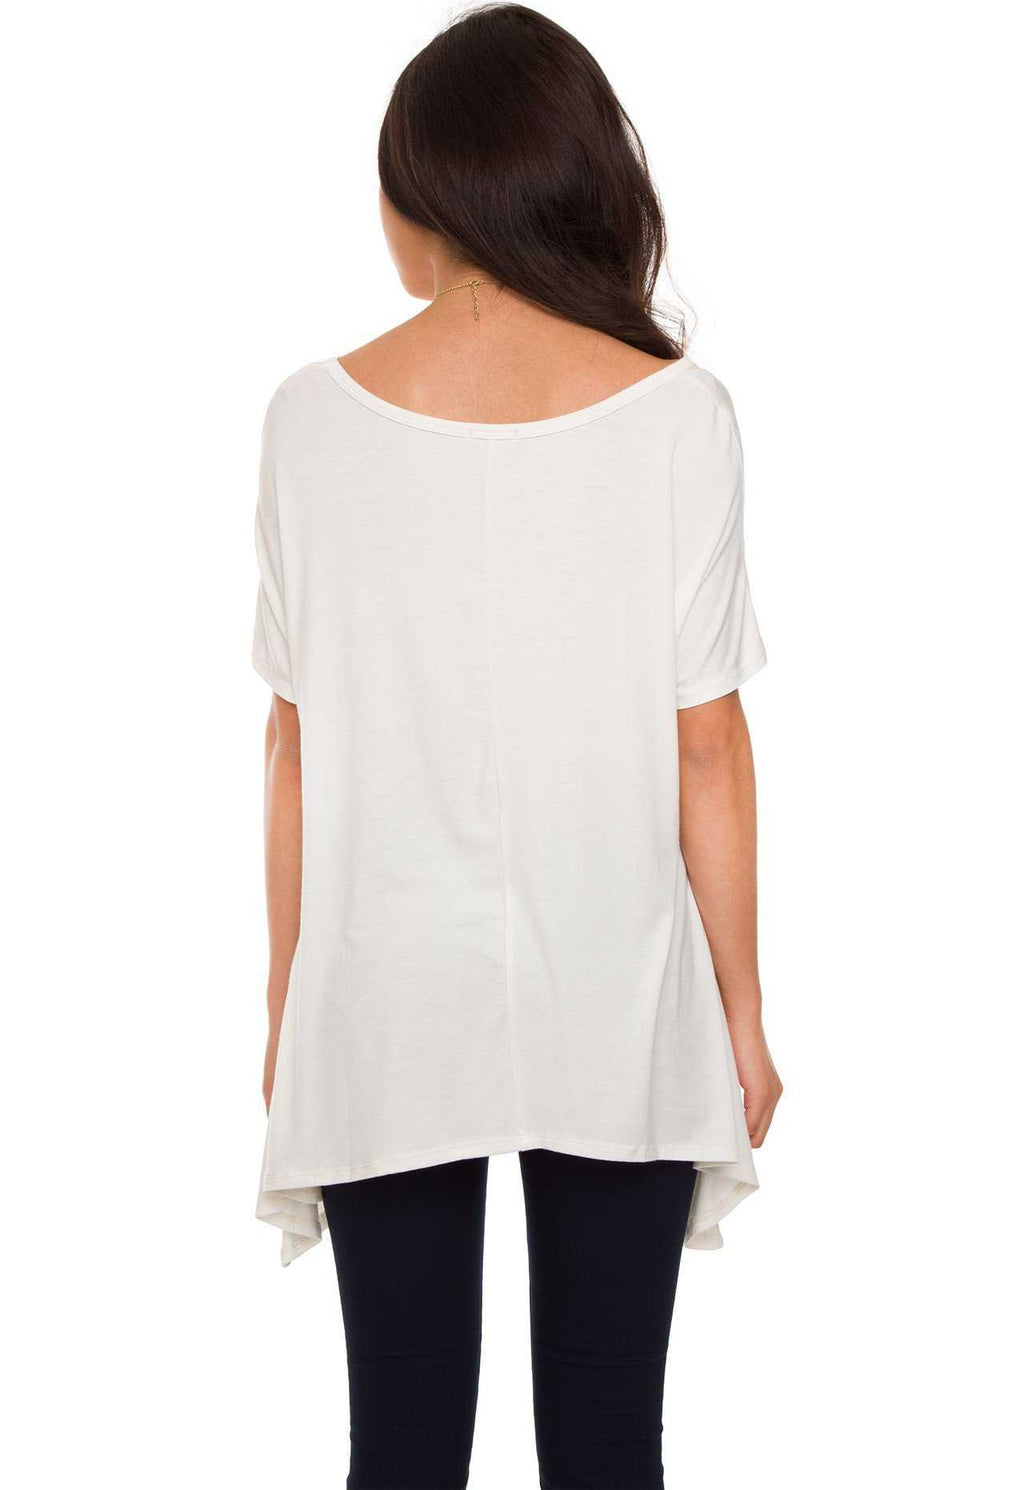 Tops - Izzy Top - White